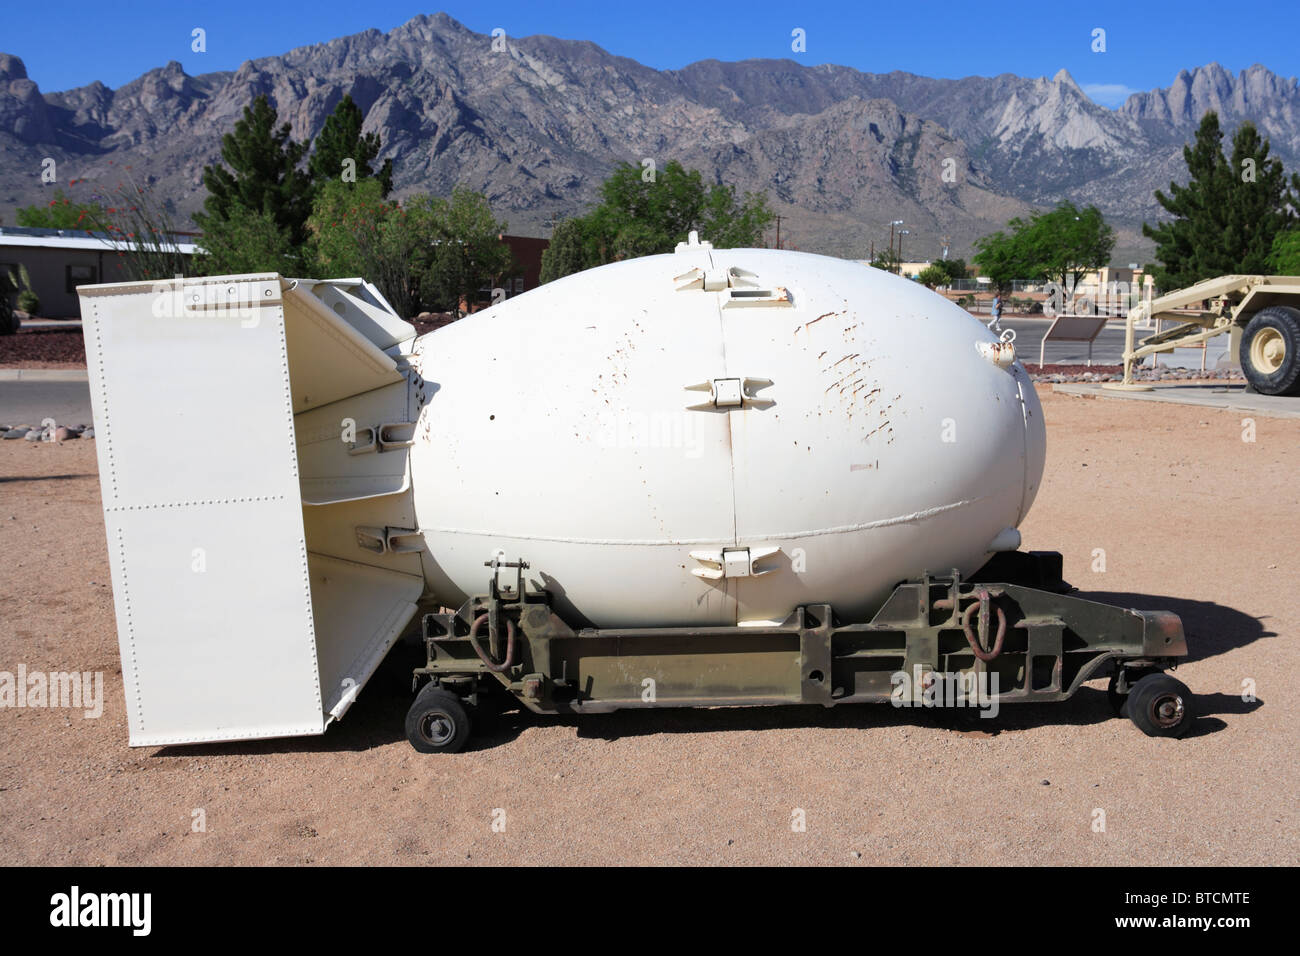 An atomic bomb casing on display at the White Sands Missile Range Museum, New Mexico. - Stock Image